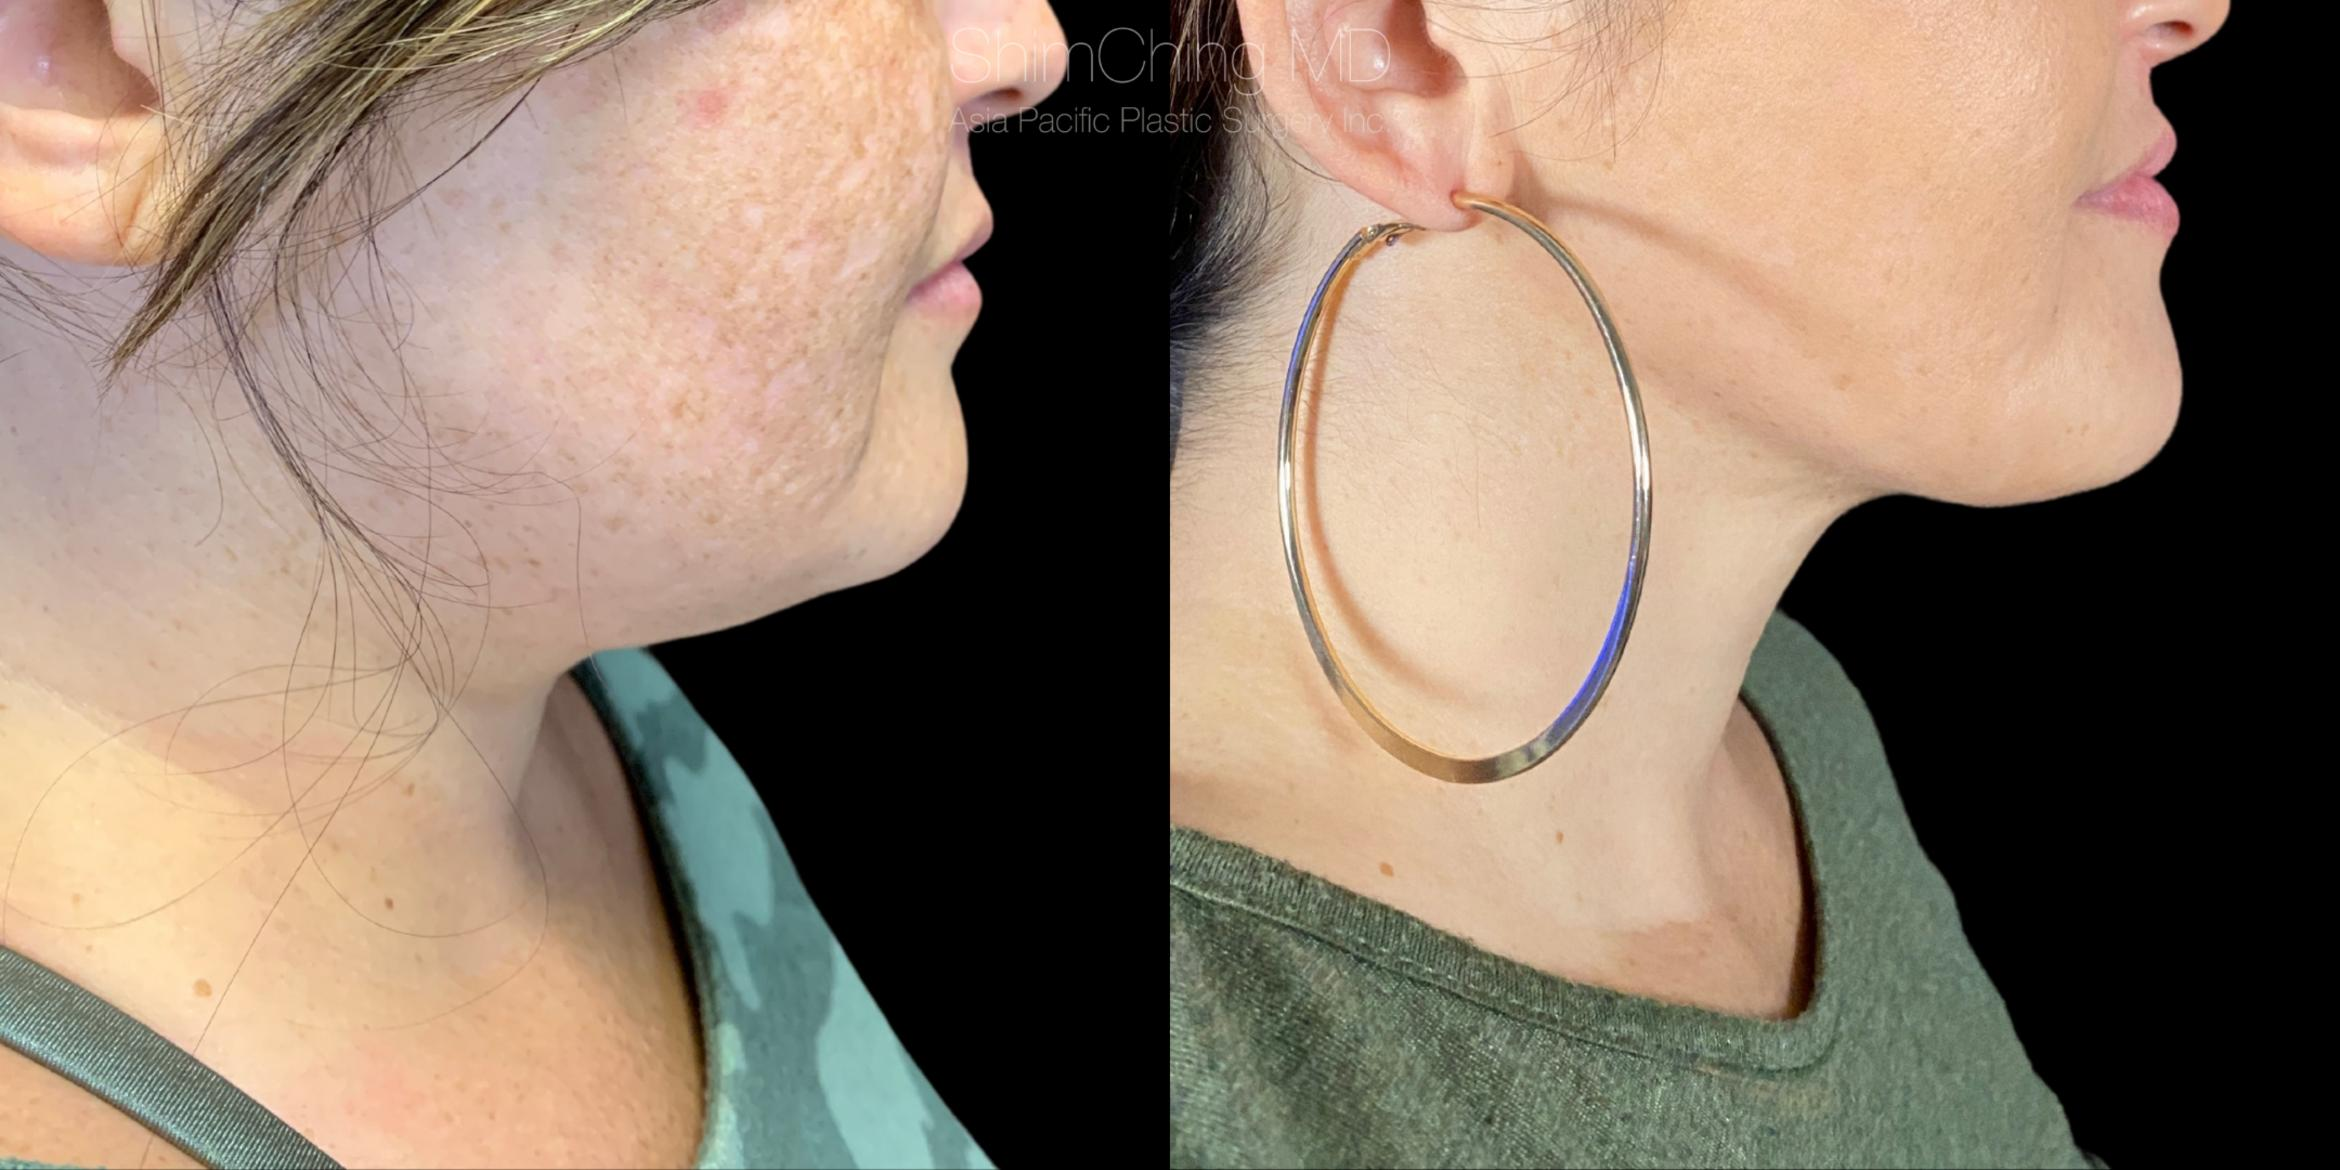 Homepage Featured Cases Case 320 Before & After Right Side | Honolulu, HI | Shim Ching, MD: Asia Pacific Plastic Surgery